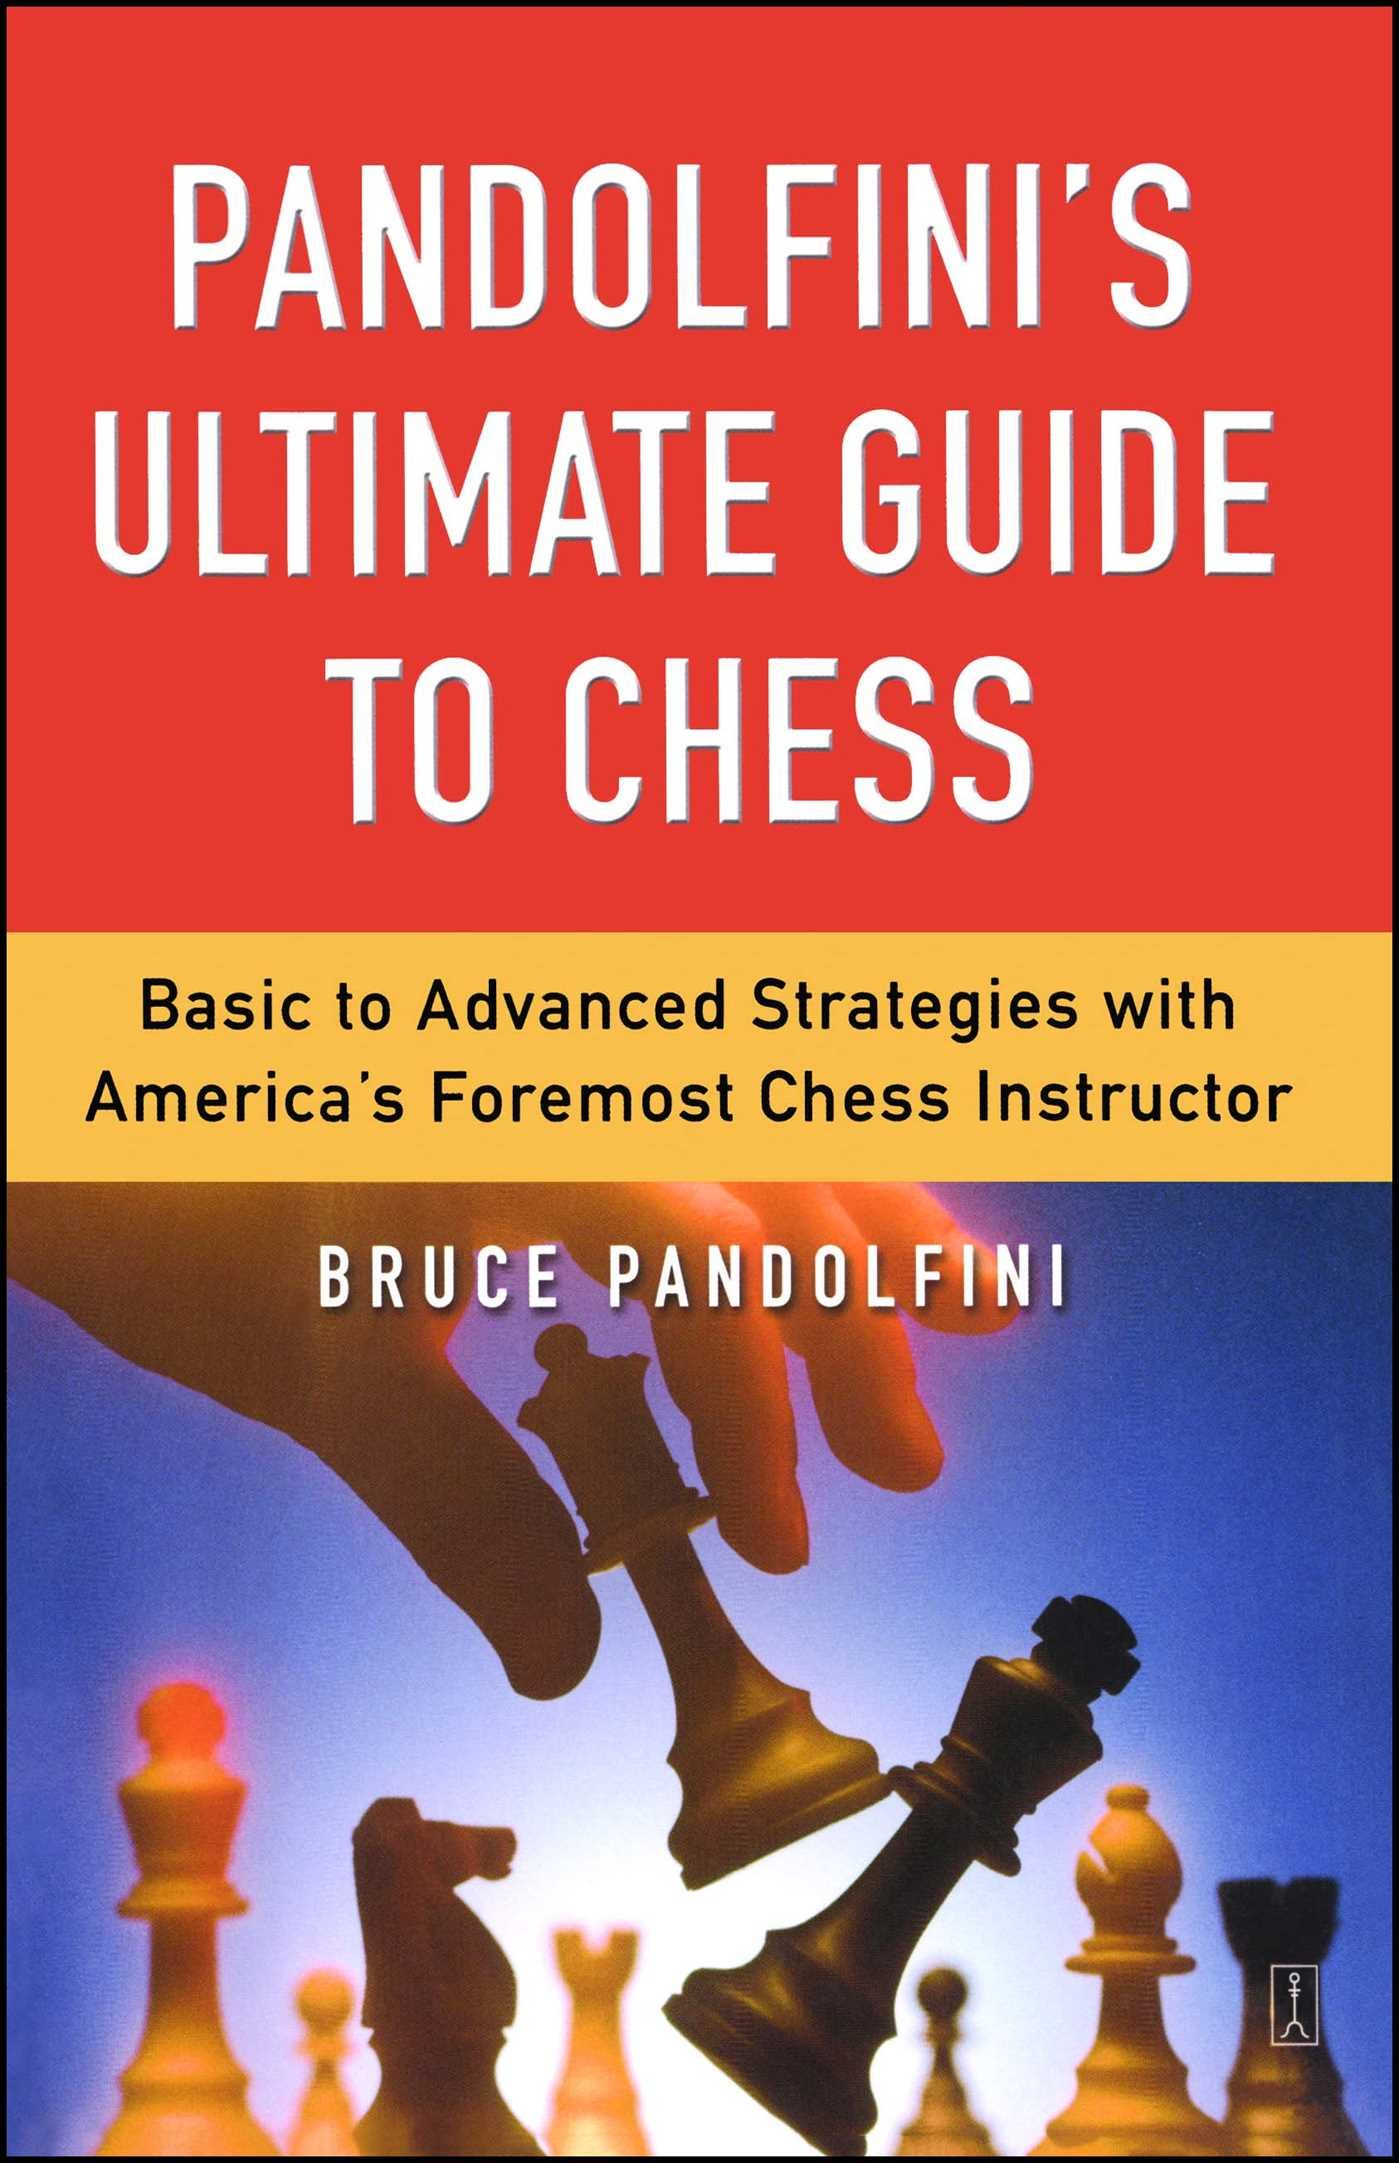 Pandolfini's Ultimate Guide to Chess: Basic to Advanced Strategies with  America's Foremost Chess Instructor: Bruce Pandolfini: 9780743226172:  Amazon.com: ...